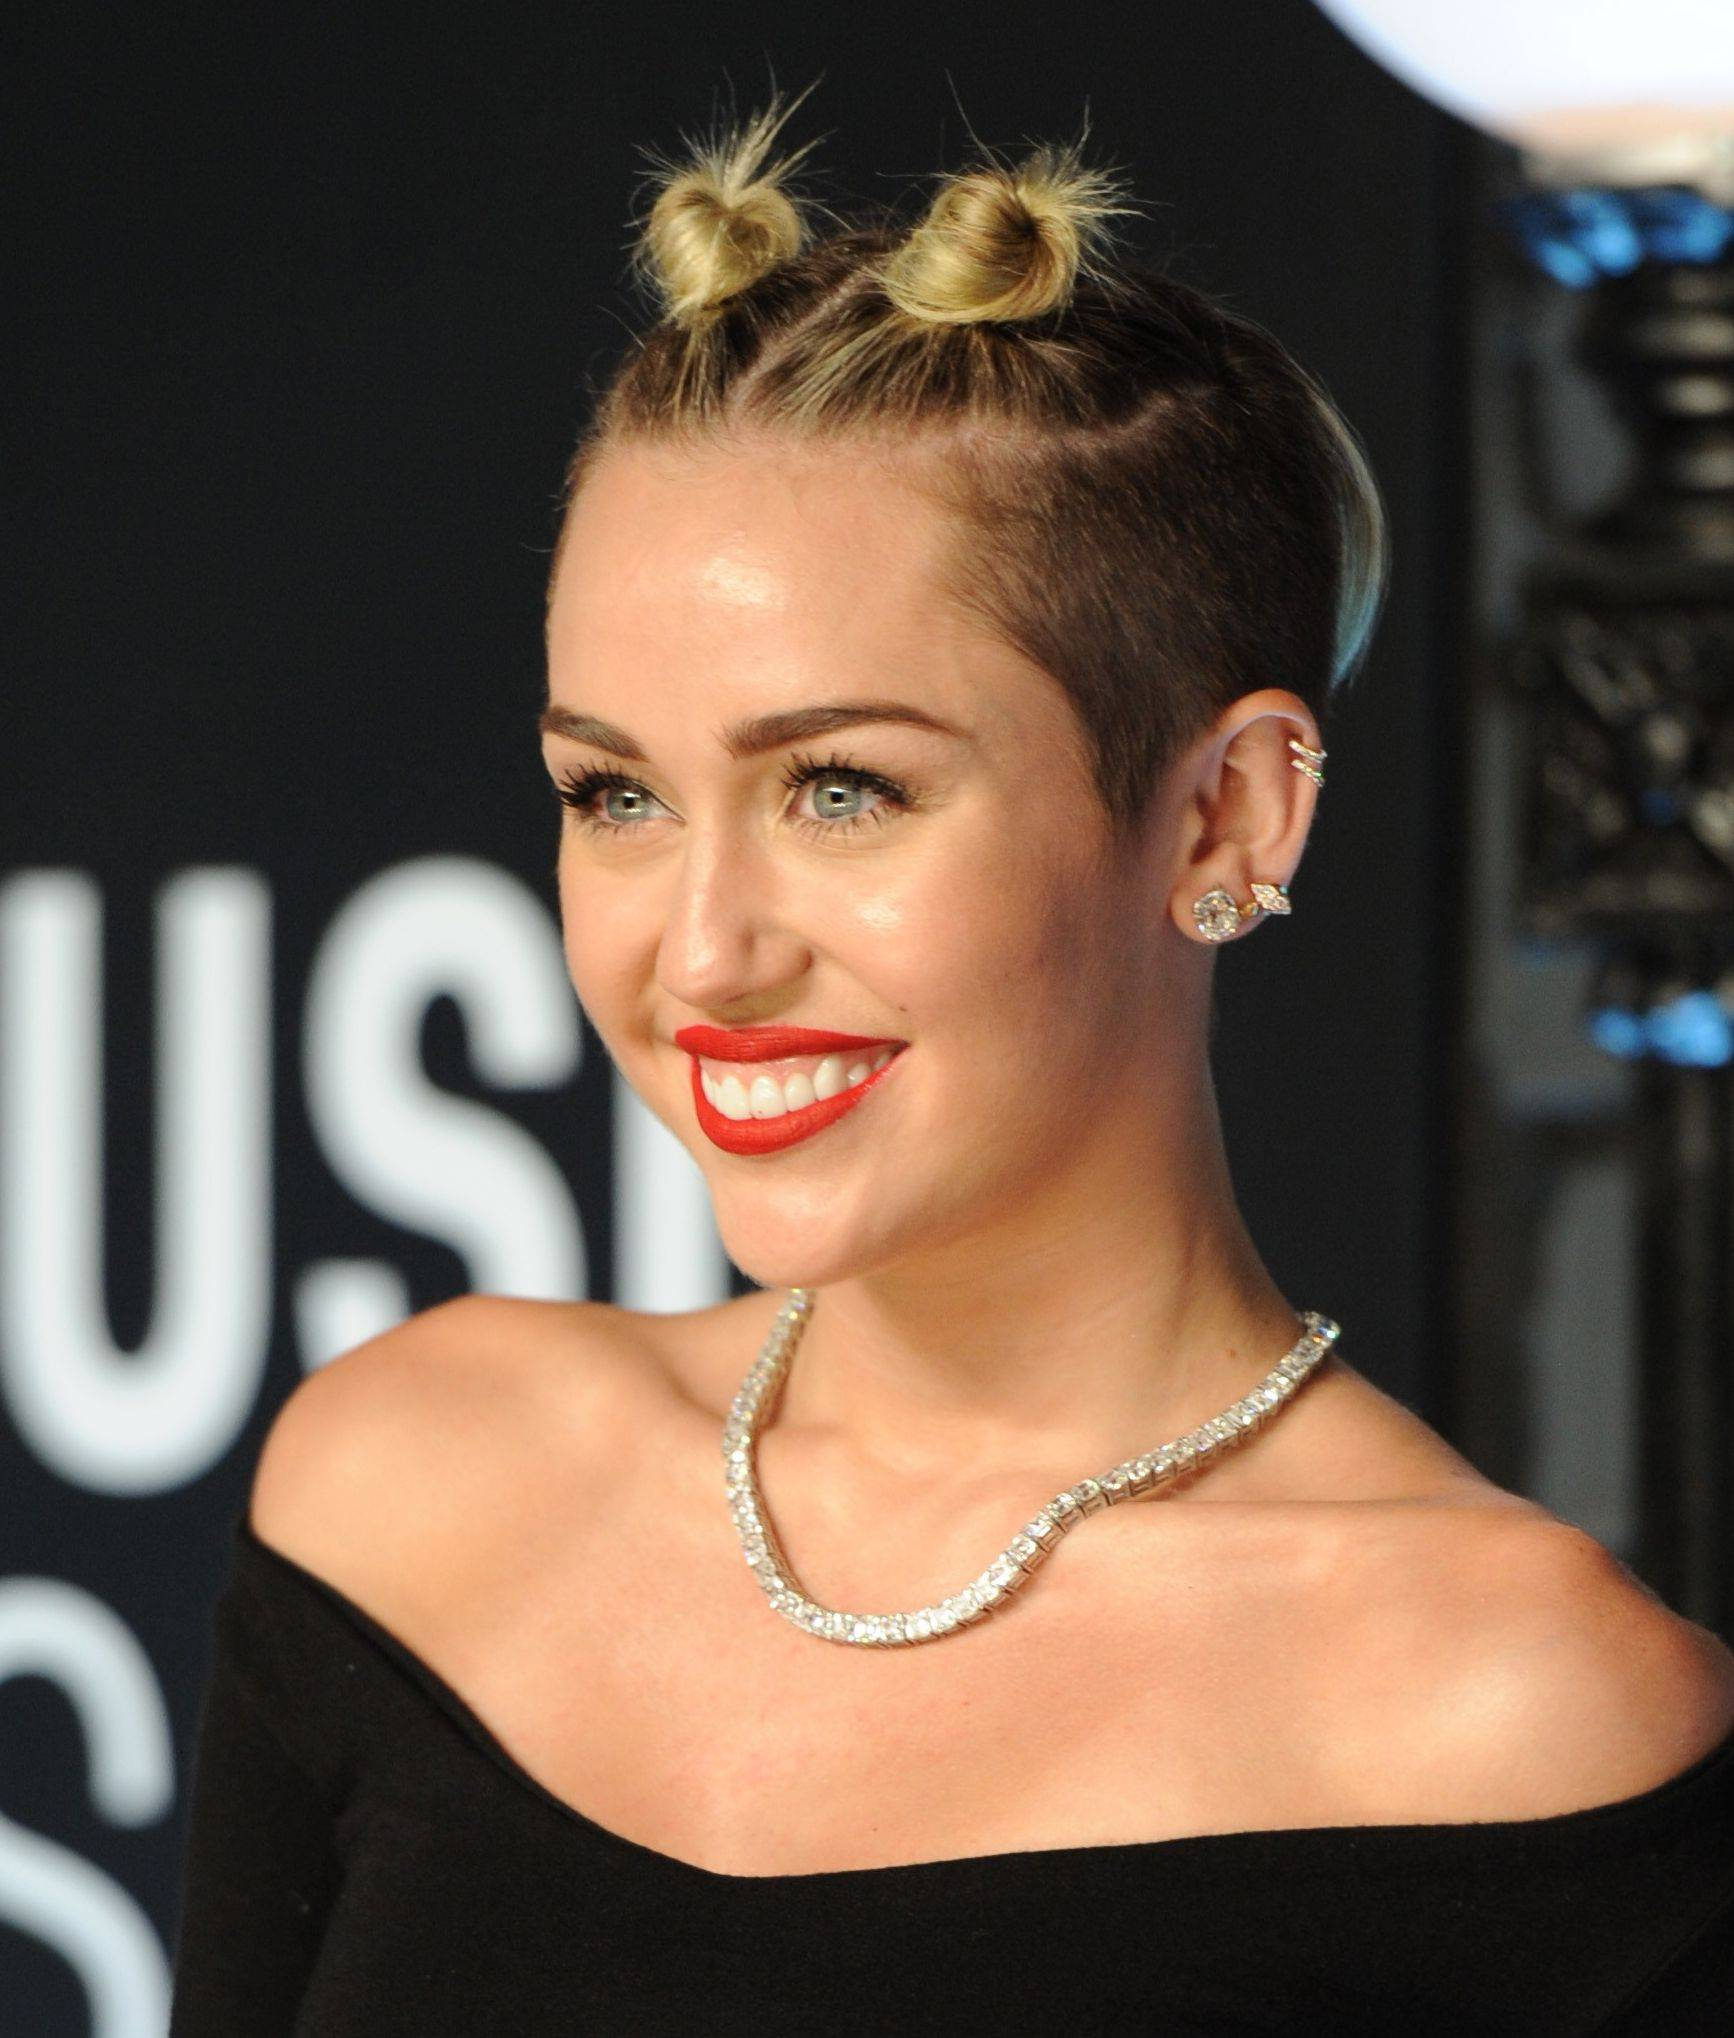 Miley Cyrus arrives at the MTV Video Music Awards on Sunday — before she did her best to promote the Oxford dictionary's newest word.